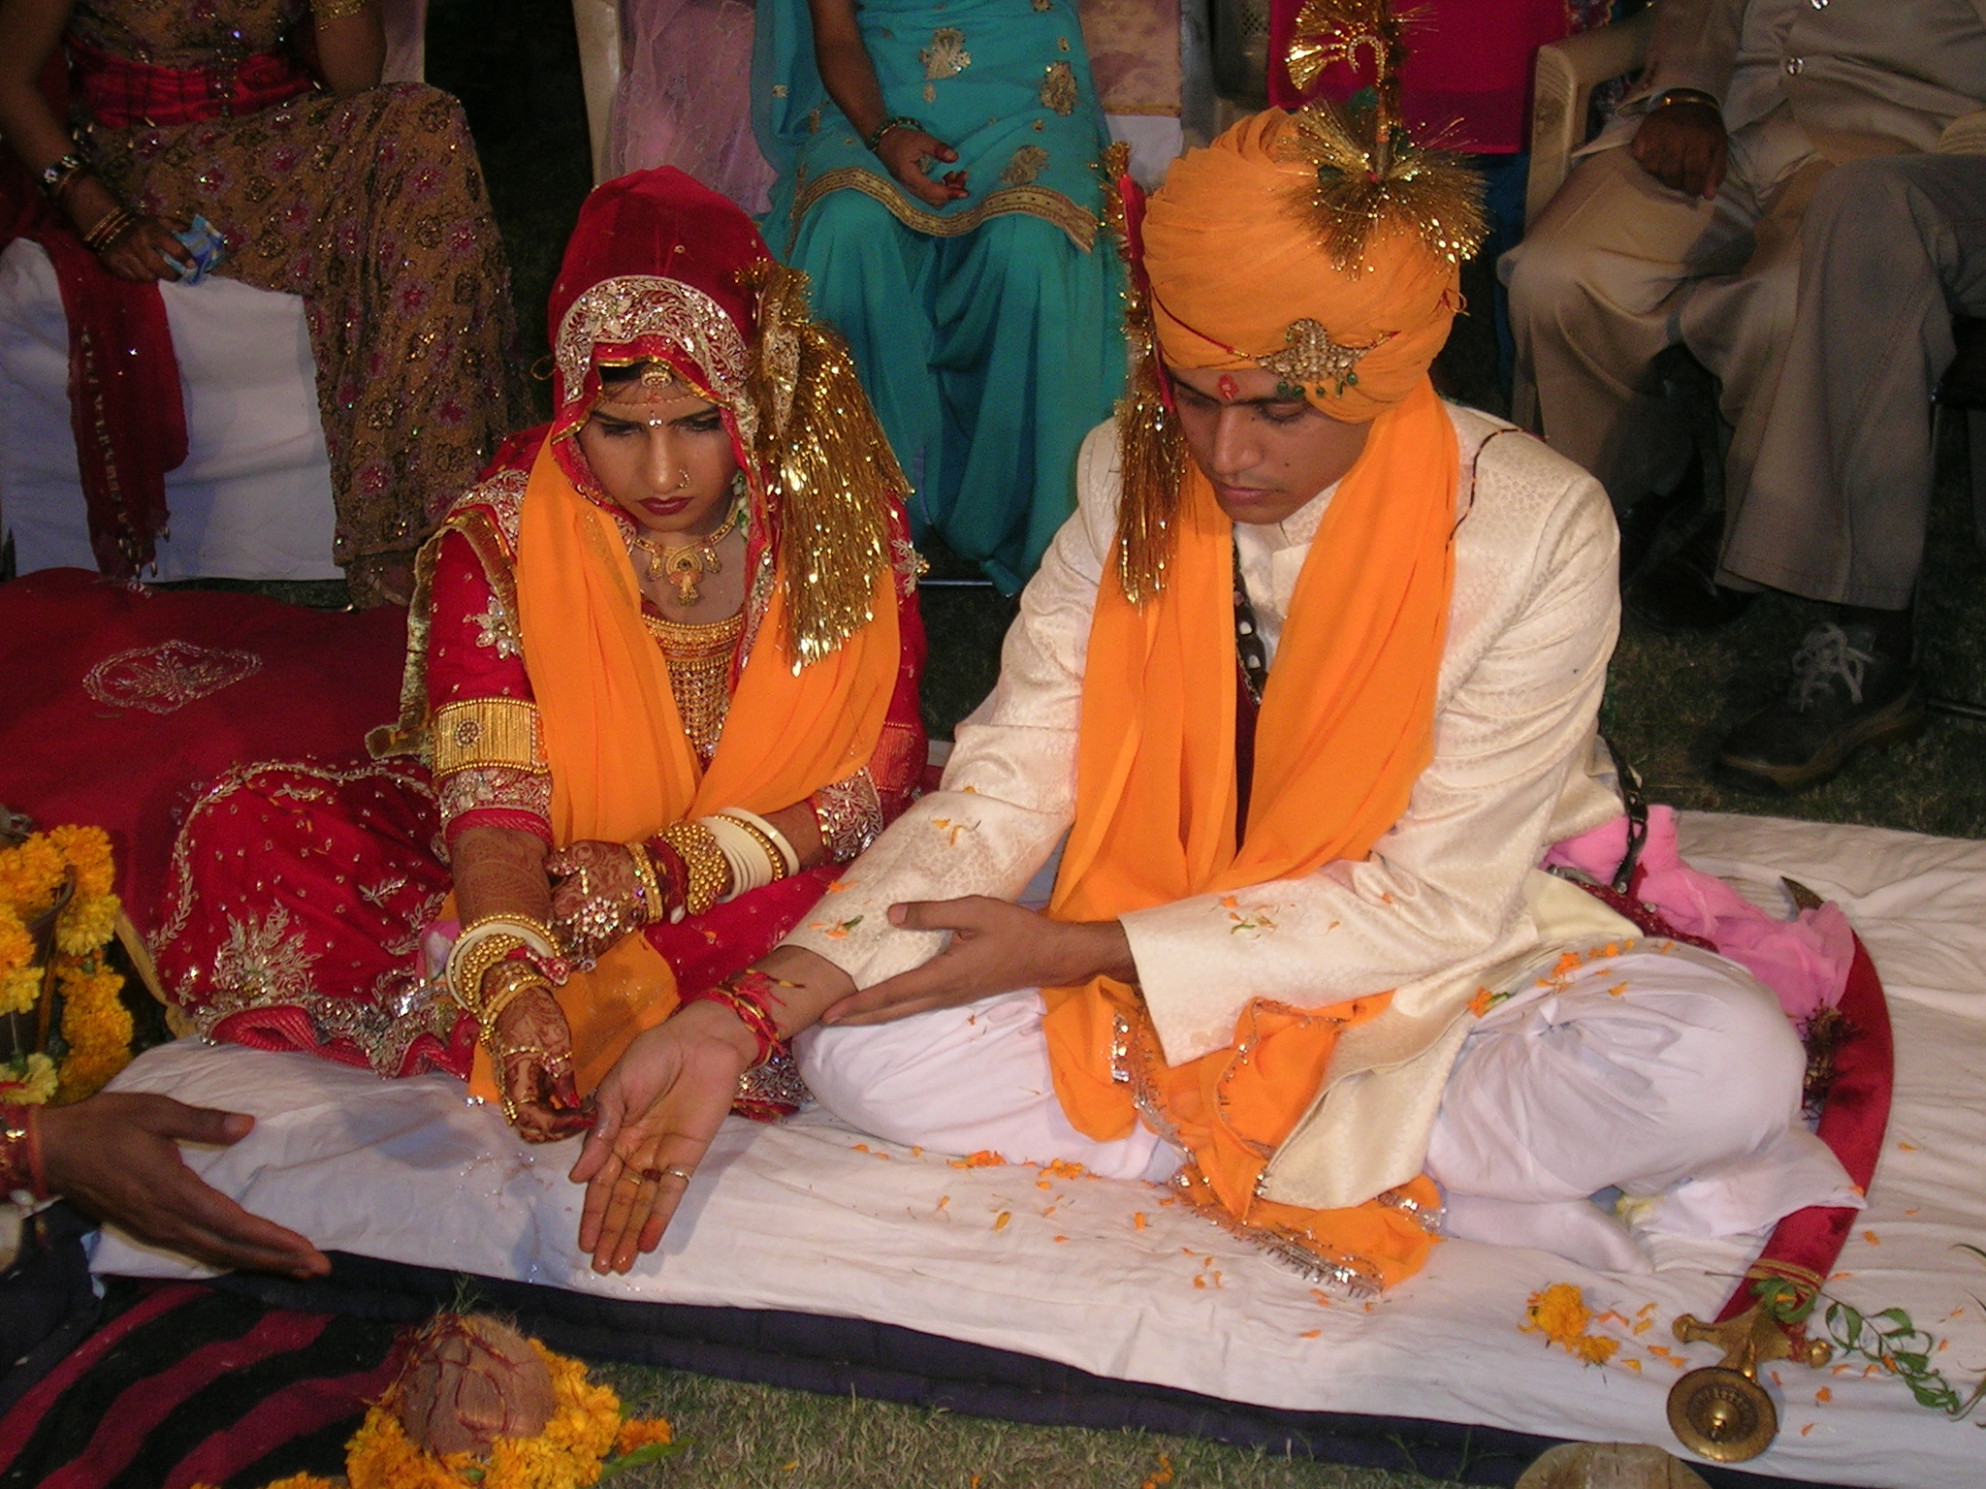 File:Hindu marriage ceremony offering.jpg - Wikipedia